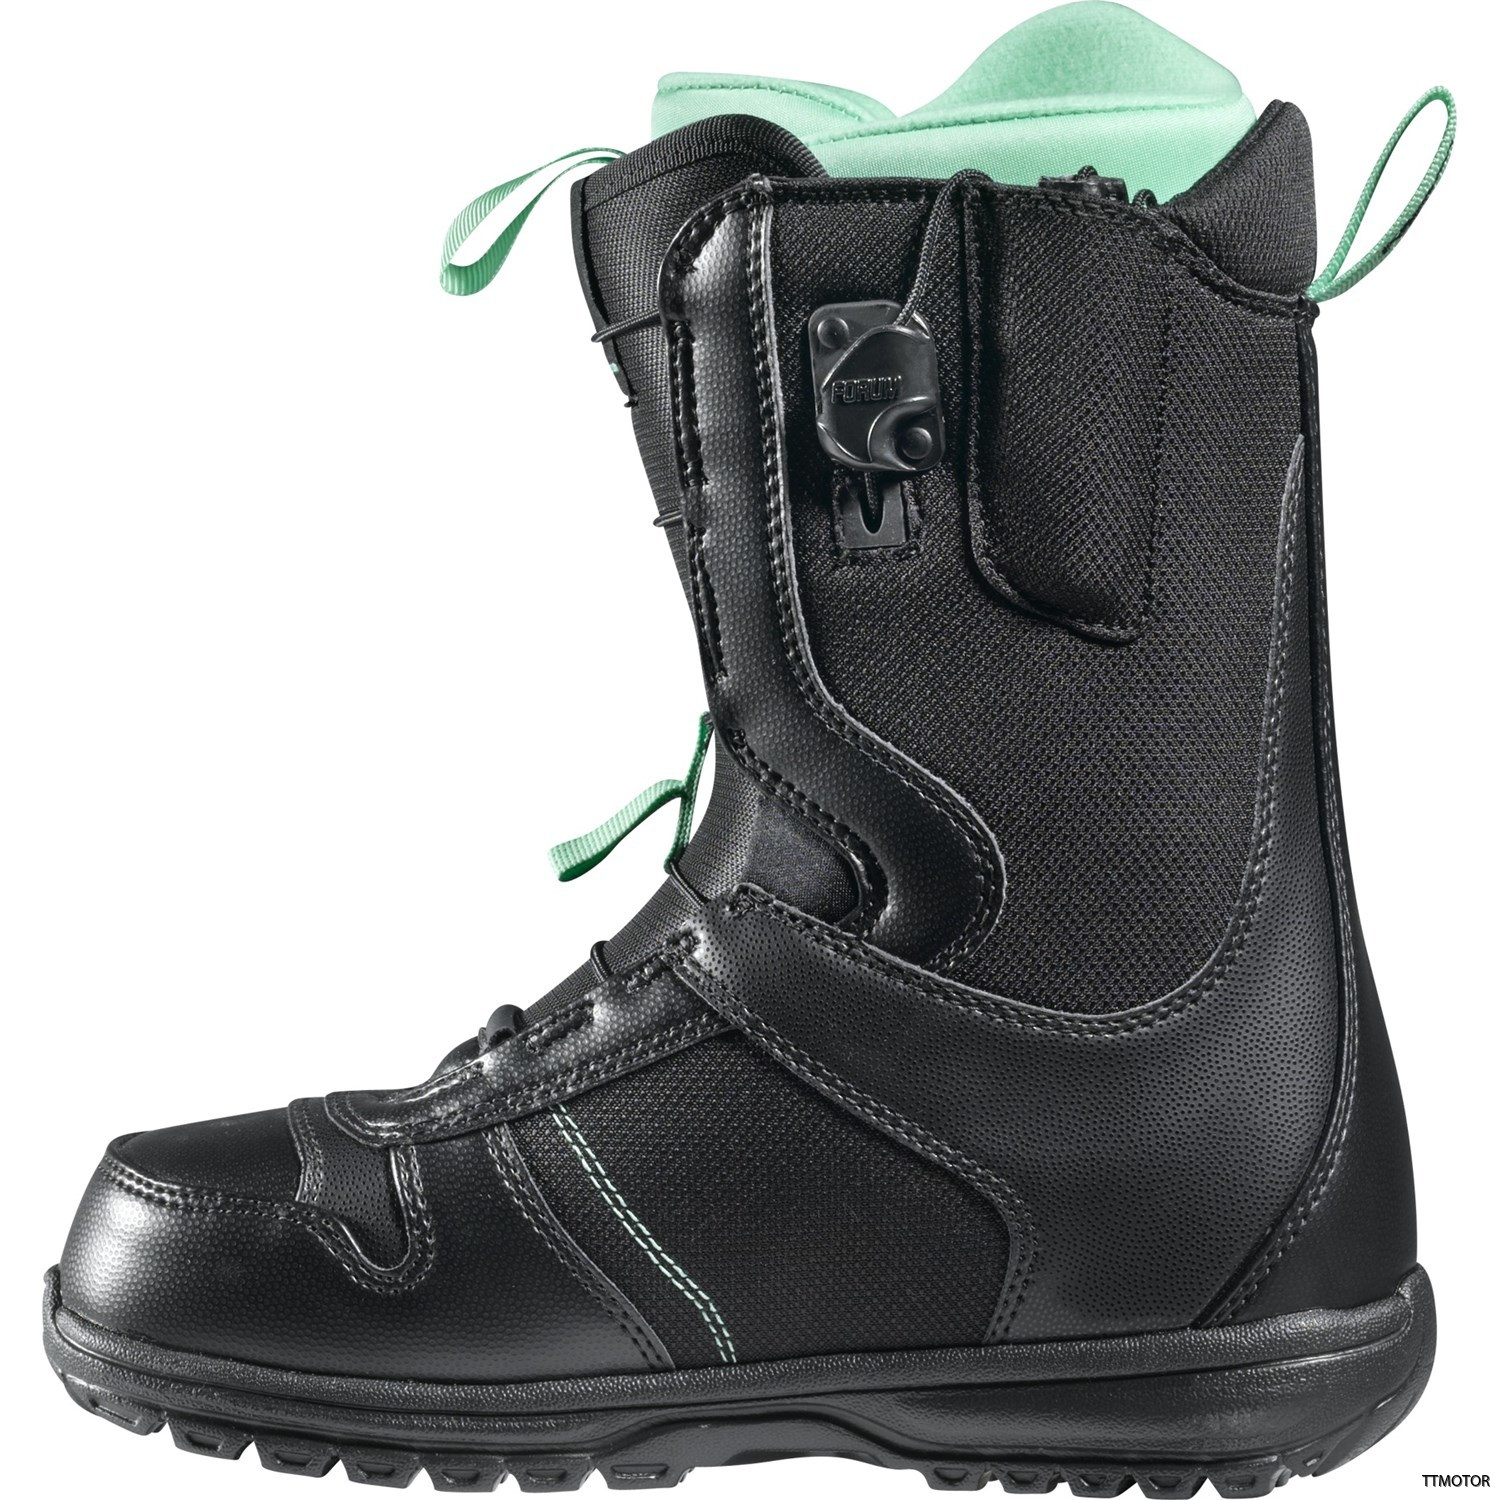 forum-mist-snowboard-boots-women-s-demo-2013-nightlight-side